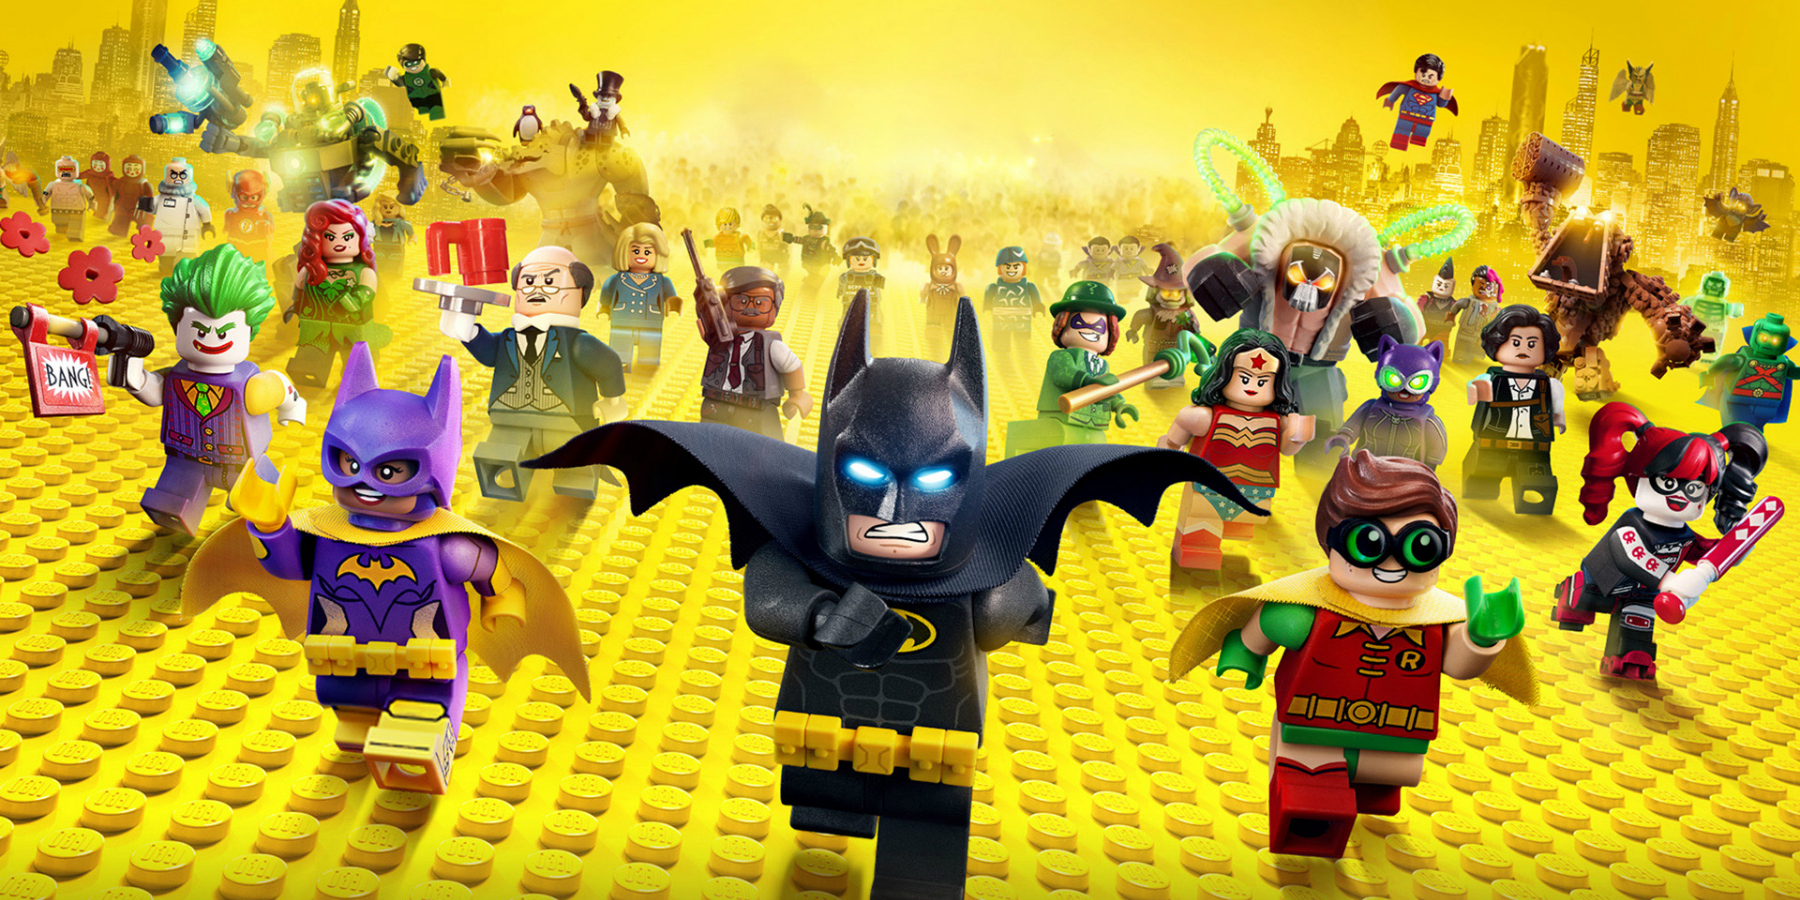 the-lego-batman-movie-characters-image.jpg